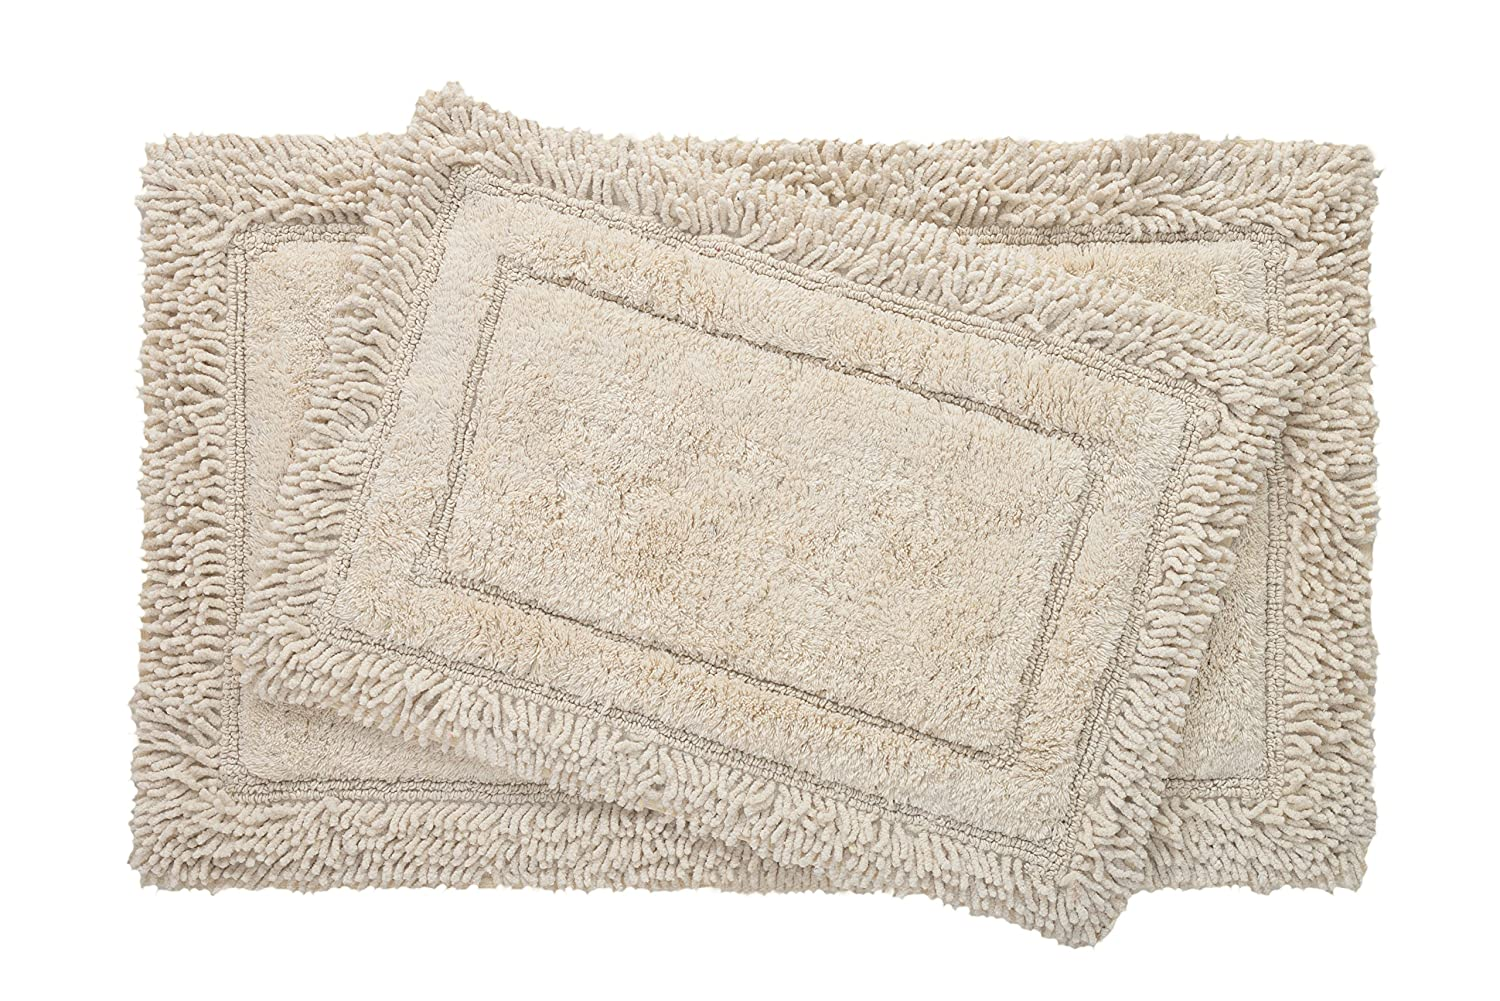 Bed Bath Fashions Savoy Shaggy 2 Piece 100% Cotton Bath Rug Set with Non-Skid Spray Latex Backing - Super Soft Luxurious Plush Shower Mats - 6 Colors (Sand) Trade Linker